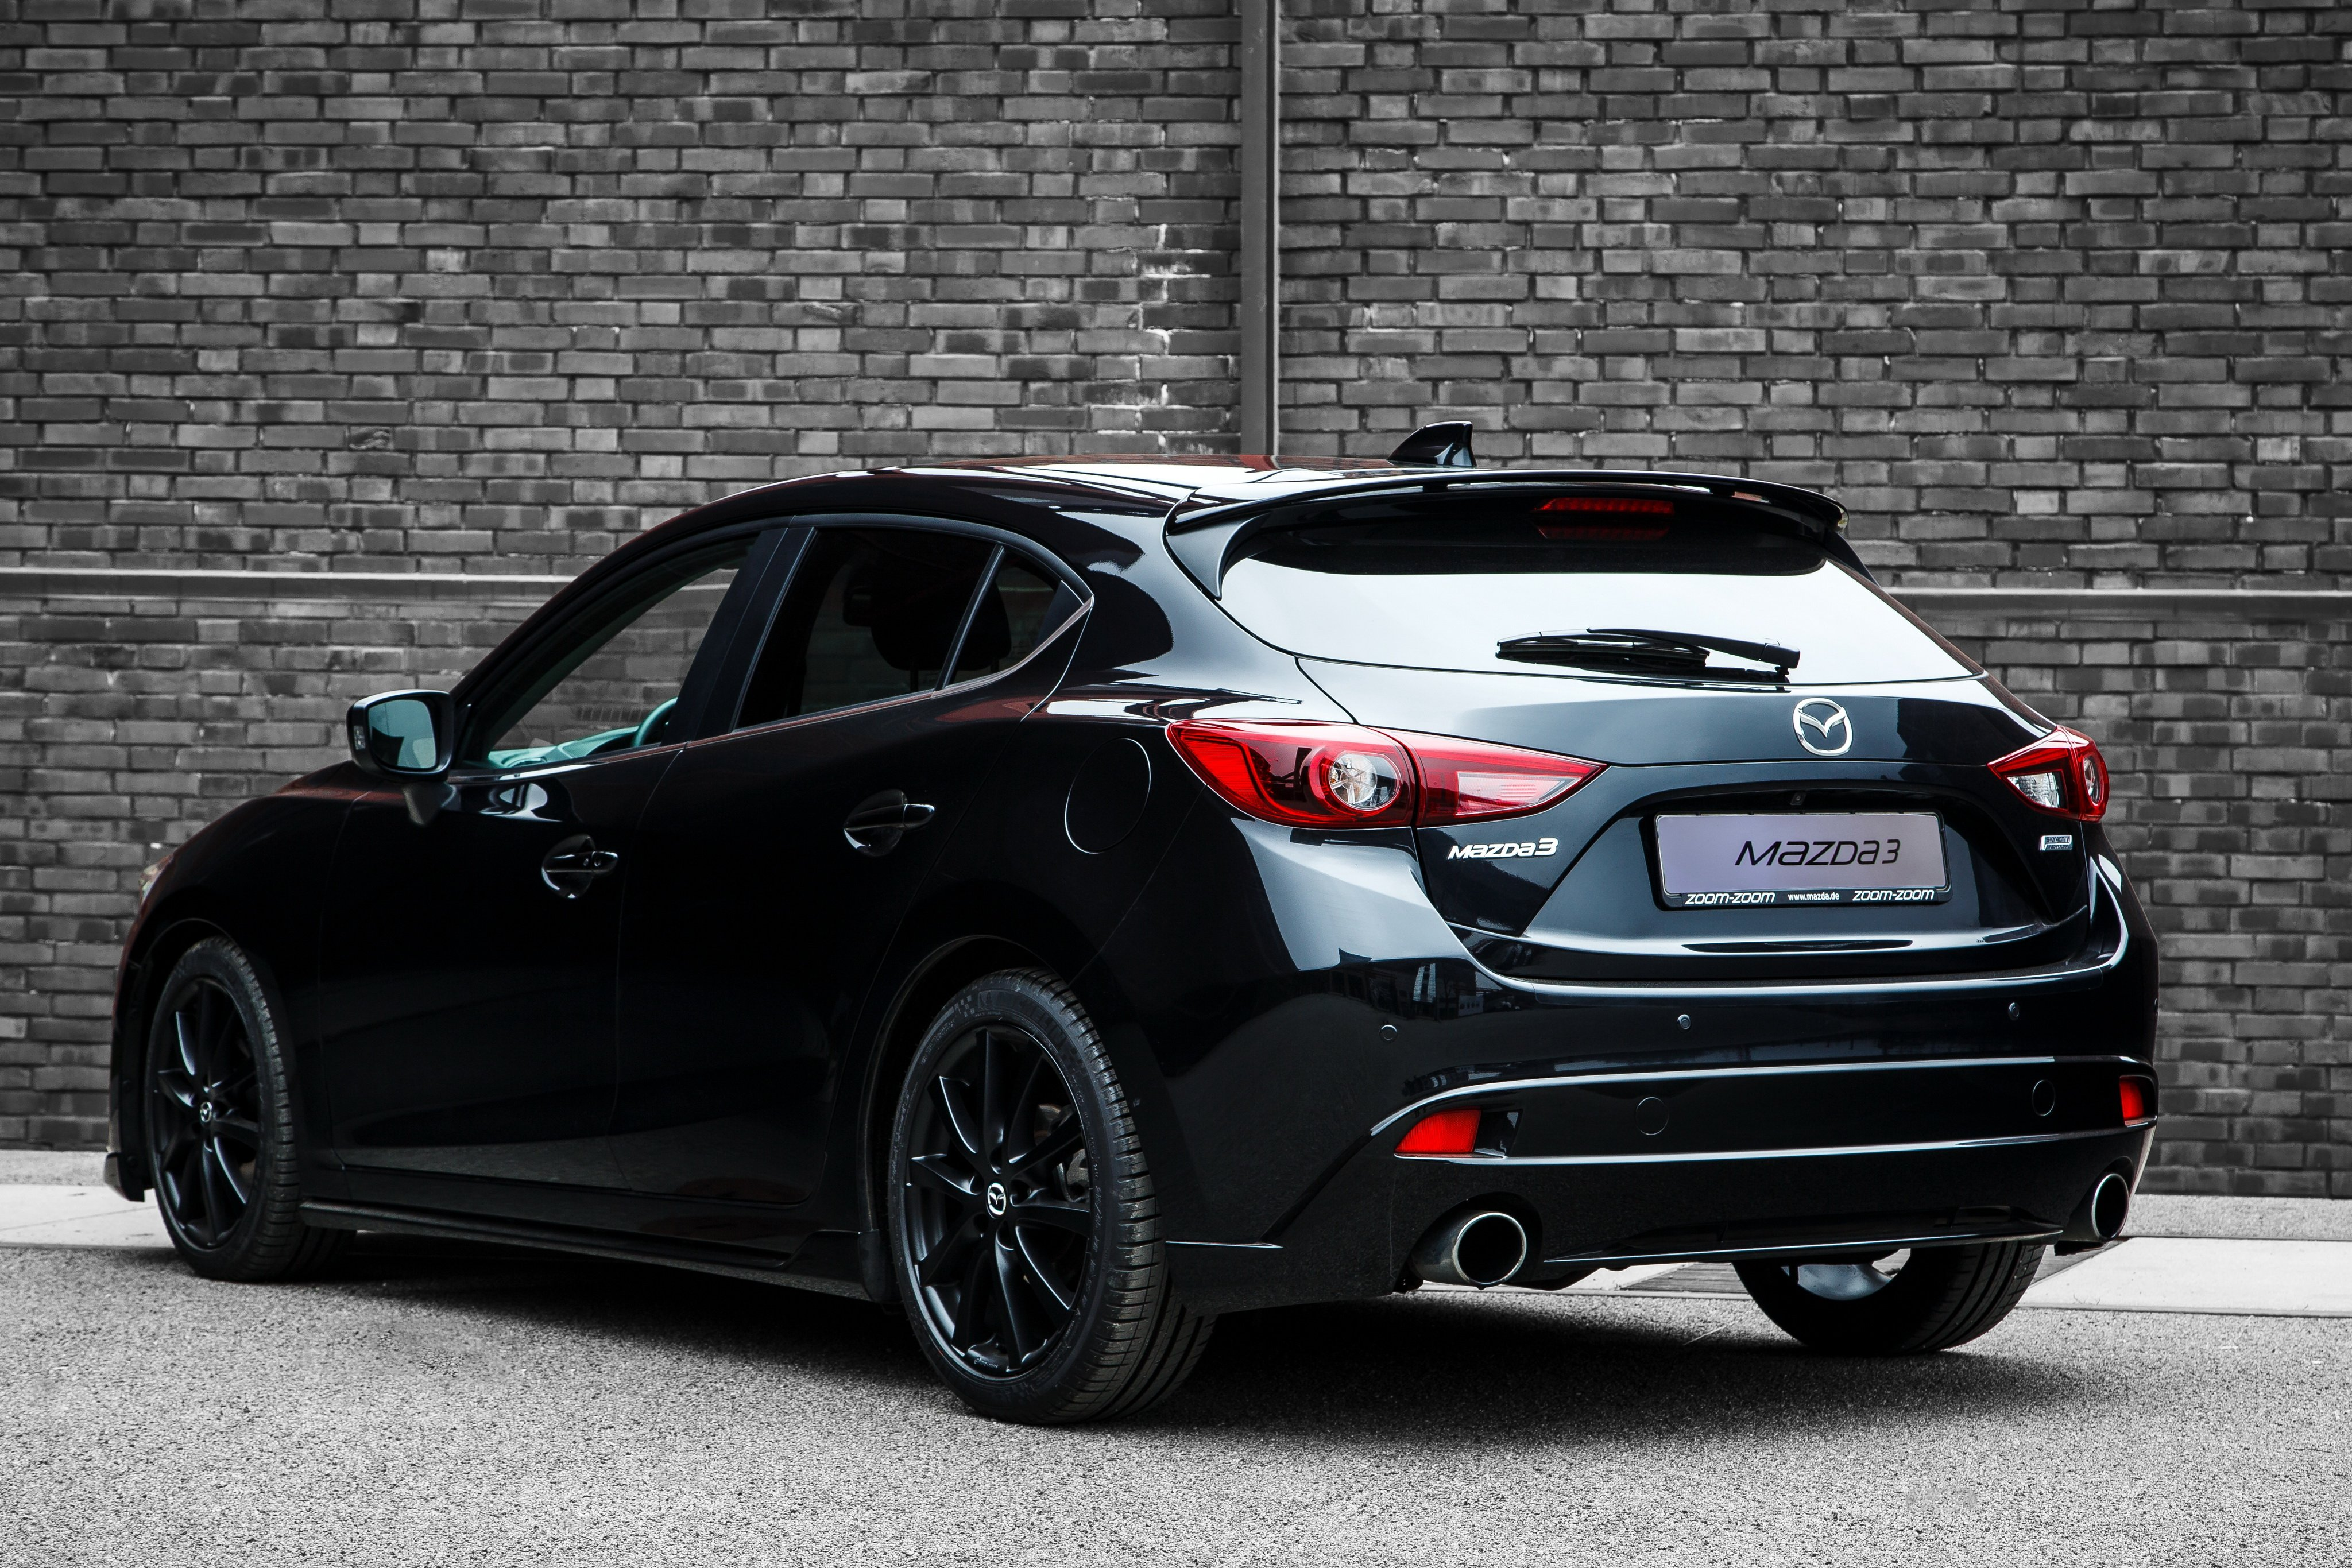 2015 Mazda3 Black Limited B M Mazda Wallpaper 4096x2731 784931